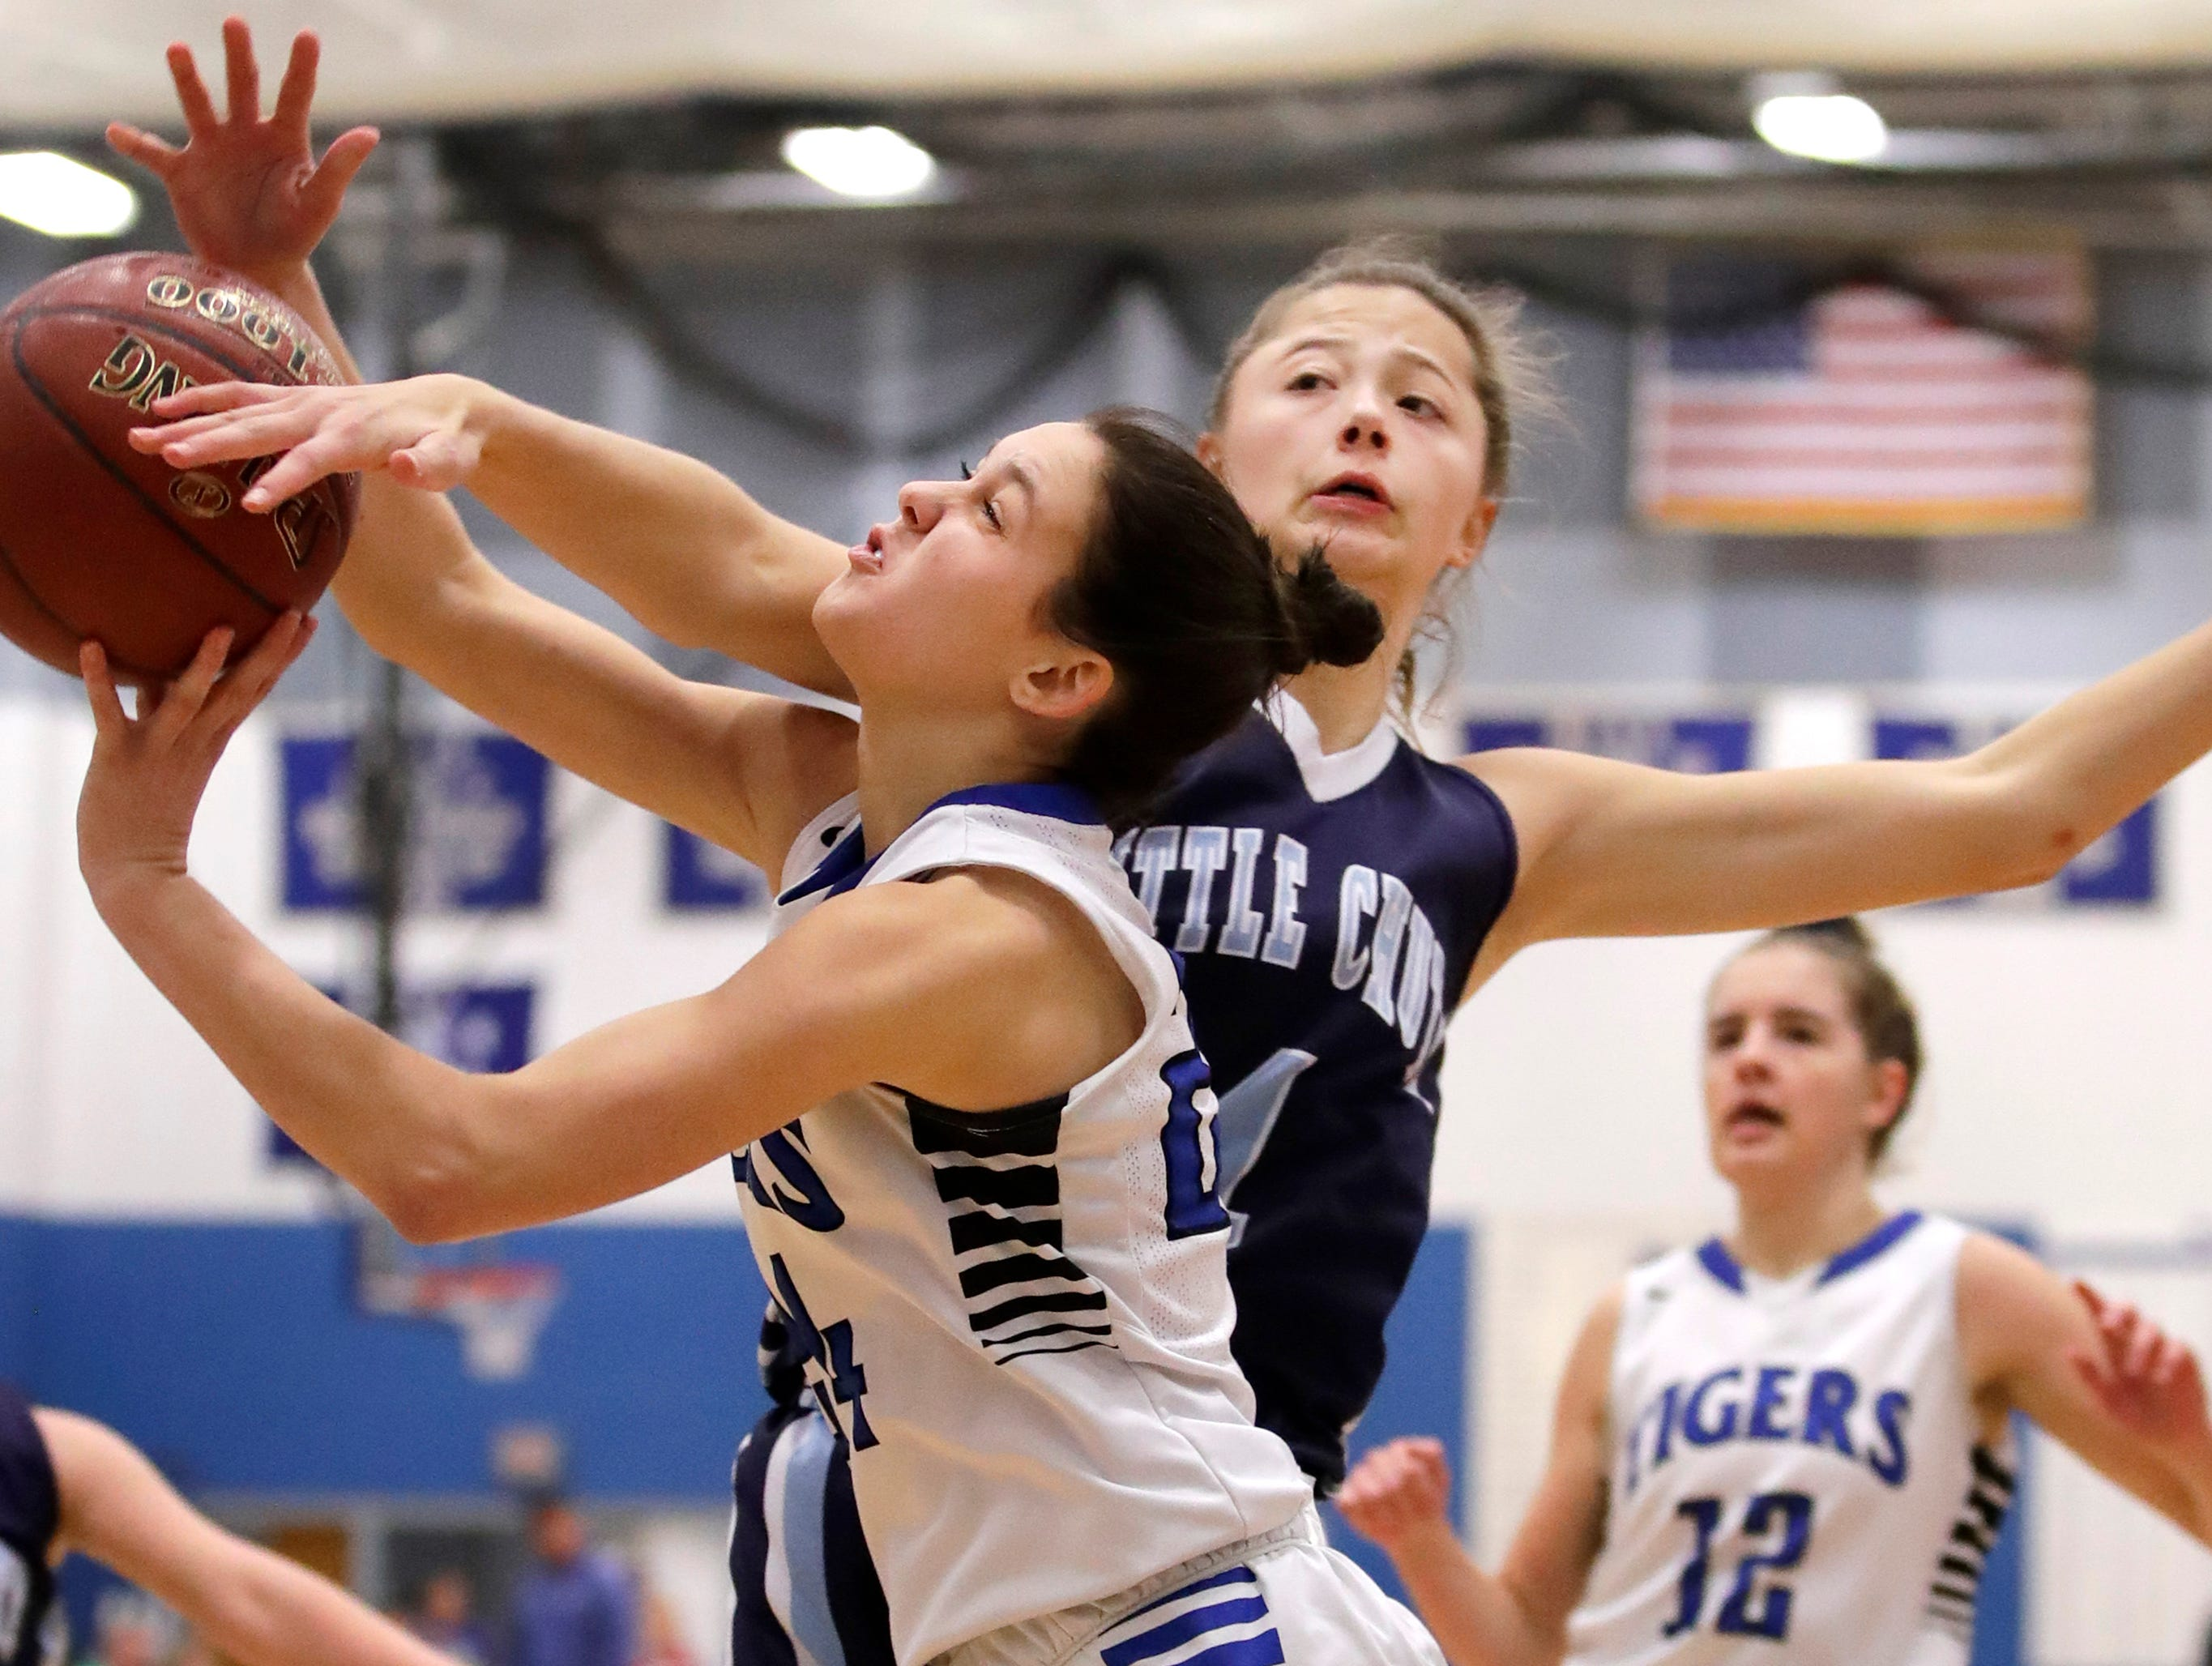 Wrightstown High School's Autumn Diny tries to get a shot past Little Chute High School's Hannah VandenBerg Tuesday, Nov. 20, 2018, in Wrightstown, Wis.Danny Damiani/USA TODAY NETWORK-Wisconsin